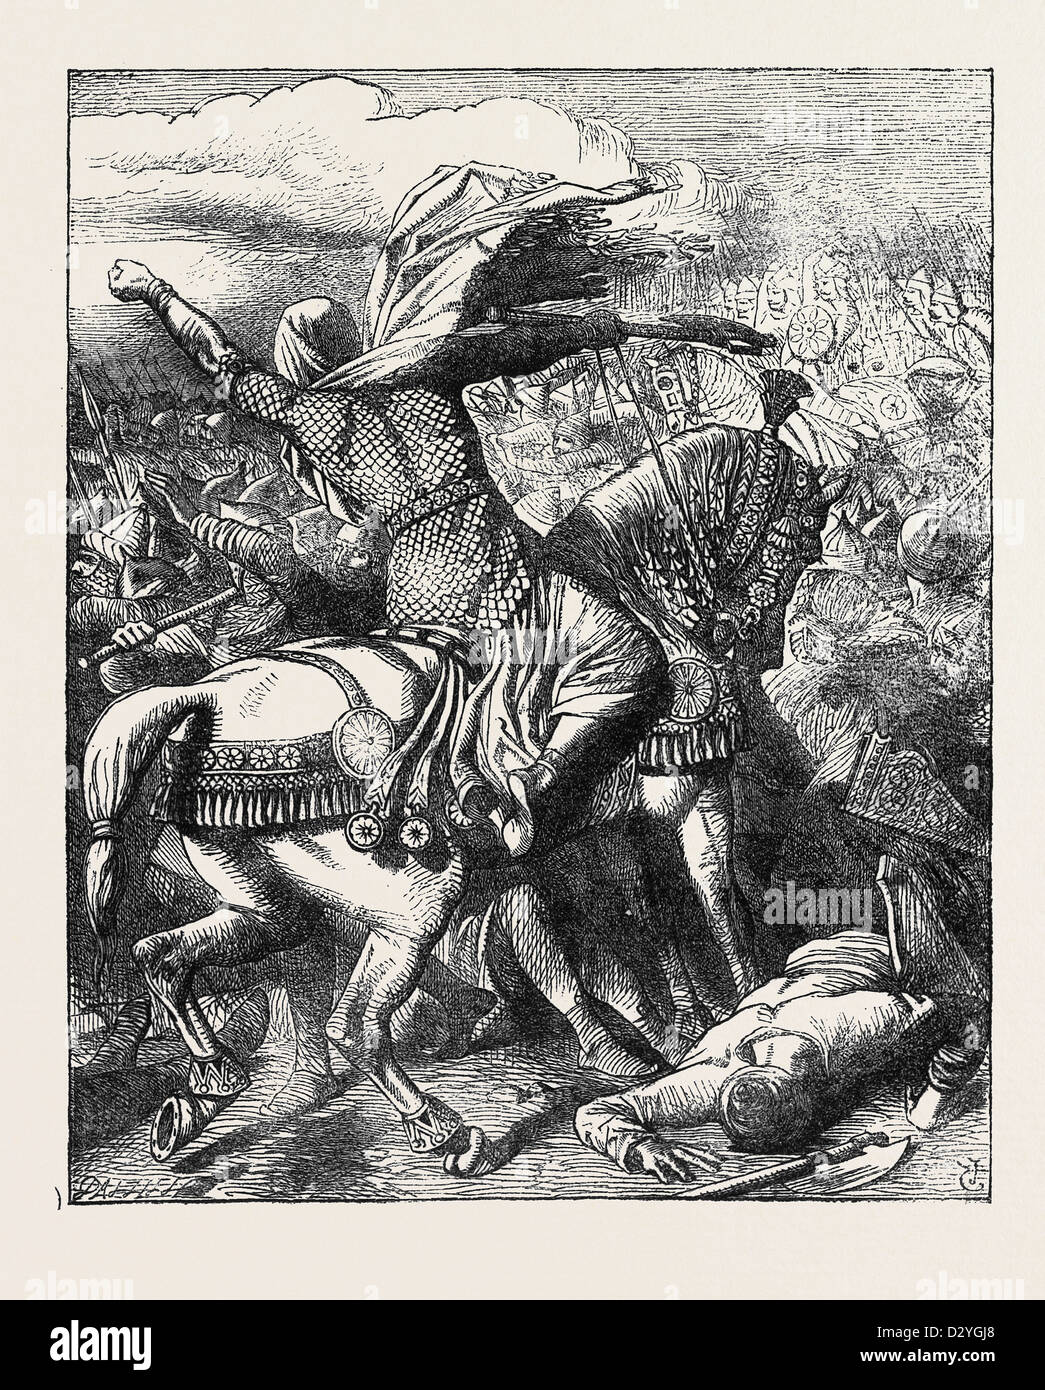 ILLUSTRATED EDITION OF LALLA ROOKH: BATTLE SCENE FROM THE VEILED PROPHET OF KHORASSAN - Stock Image